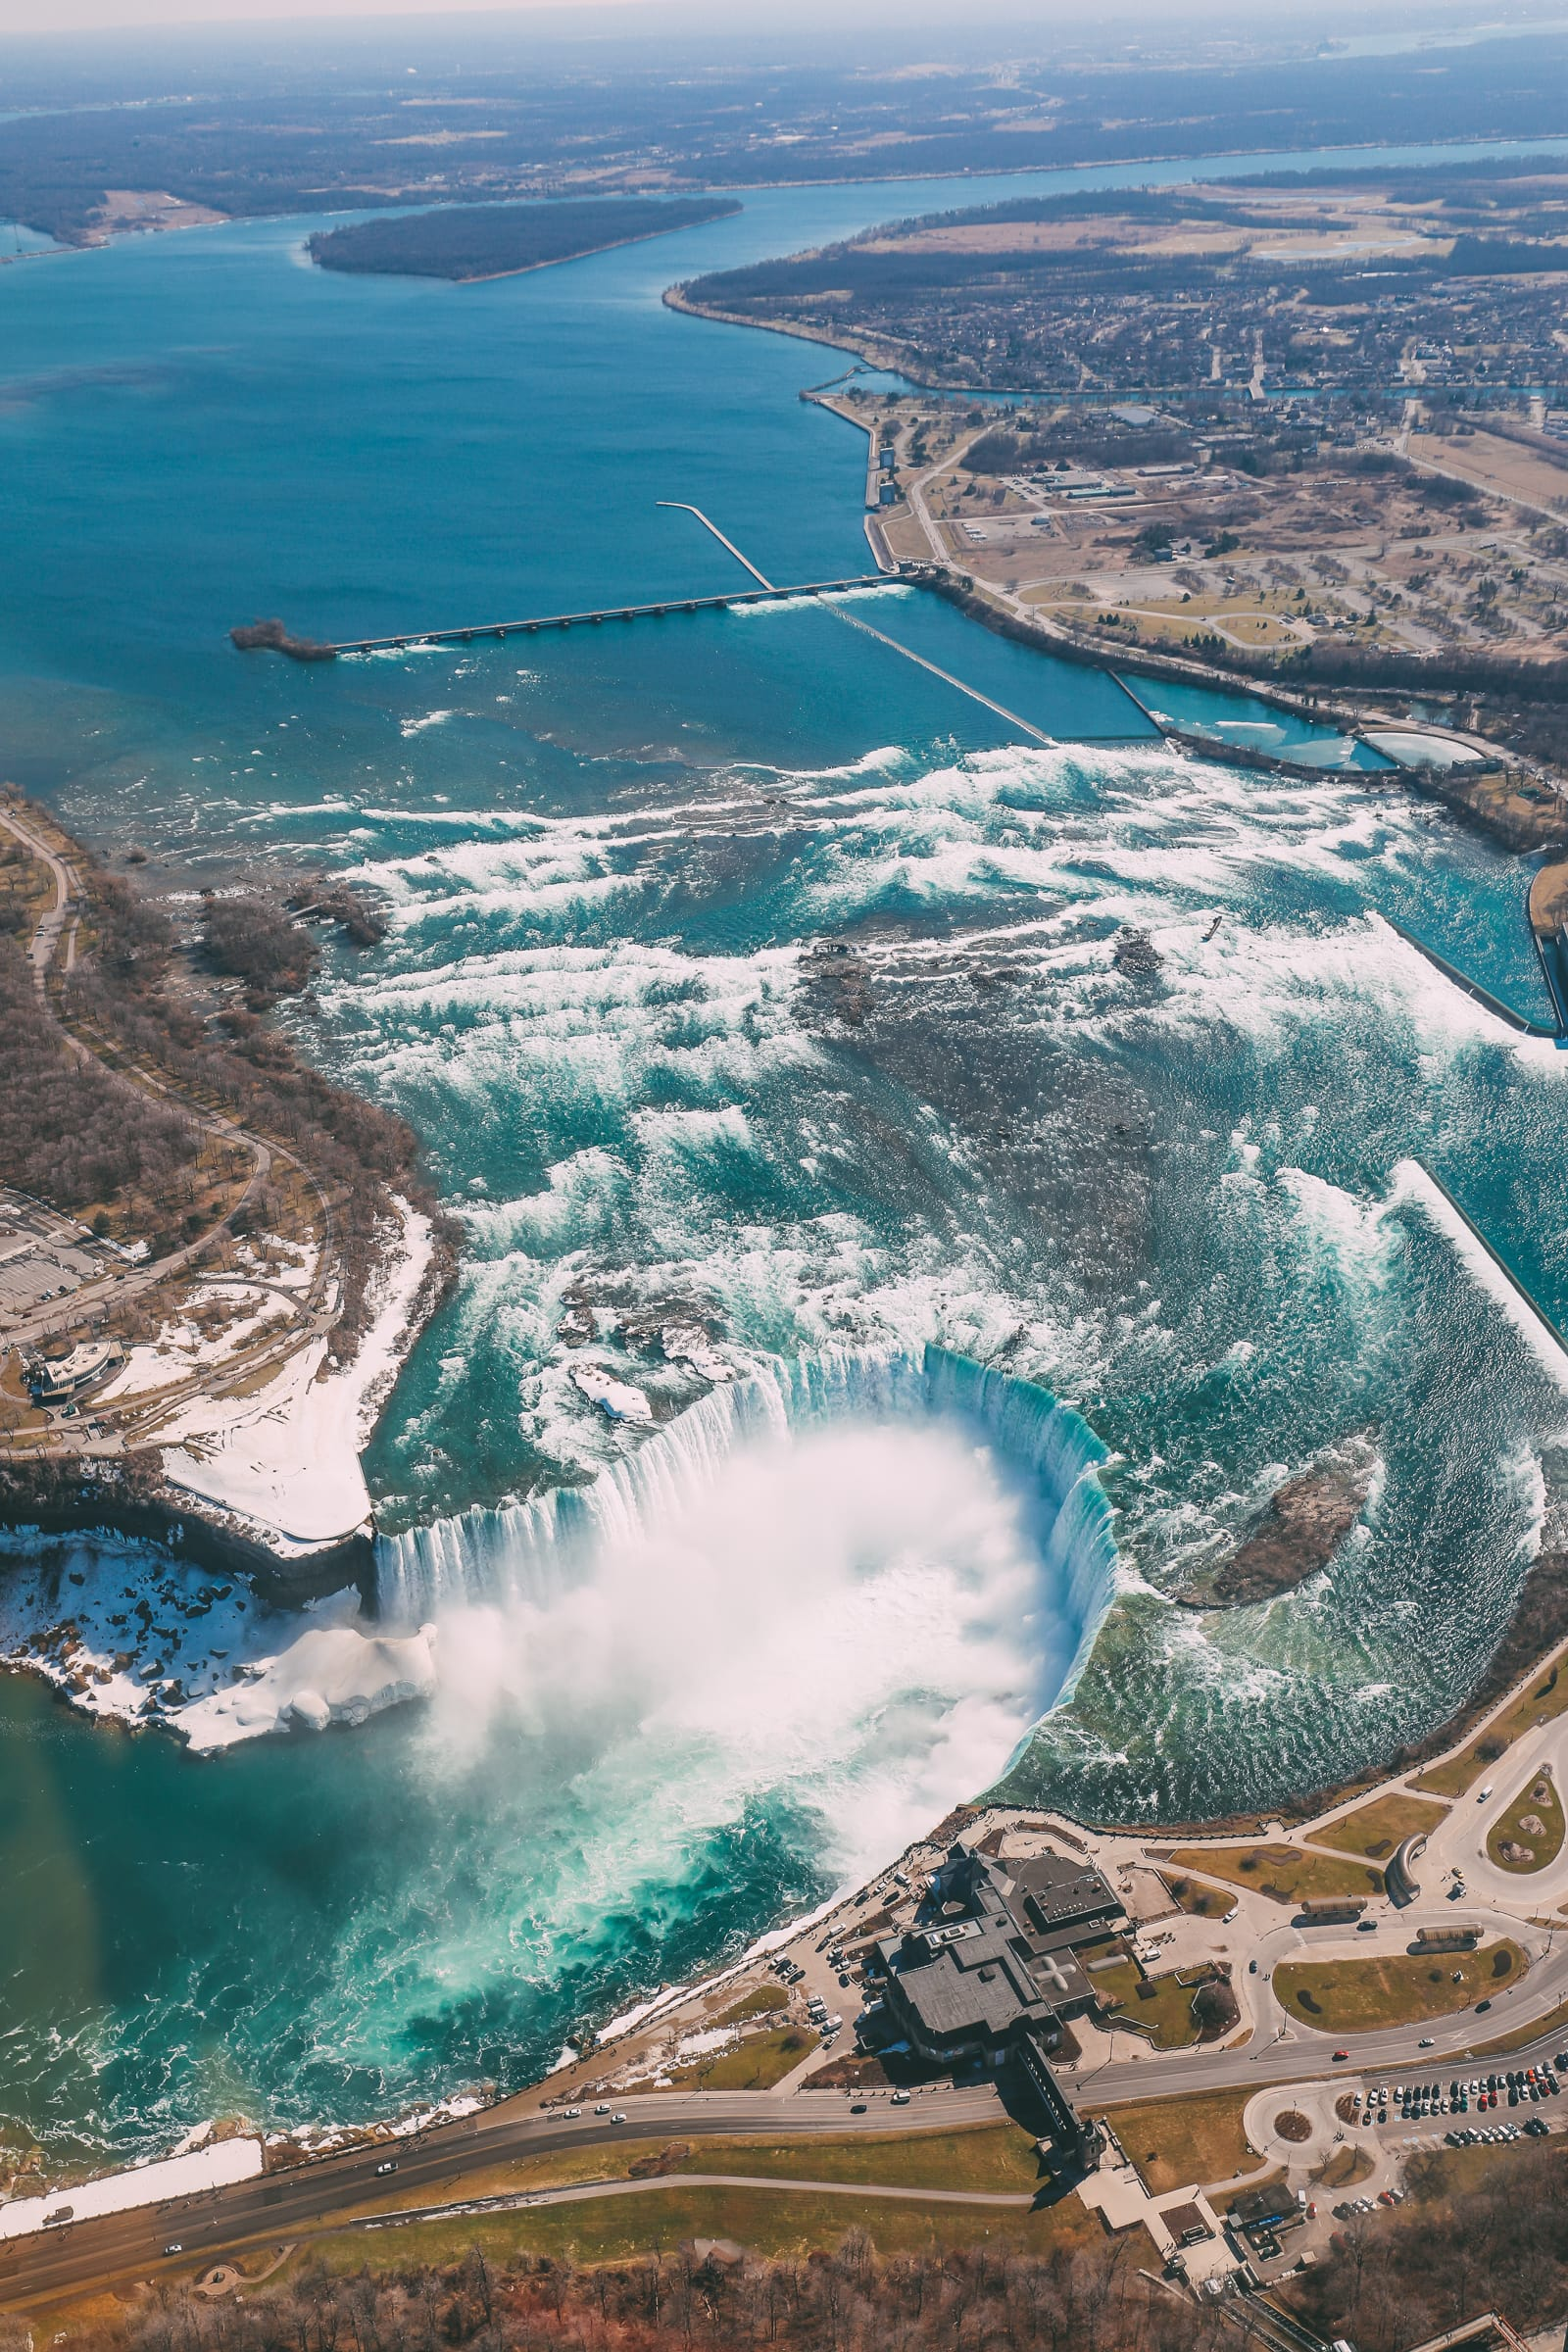 This Is An Amazing Way To Experience Niagara Falls! (5)